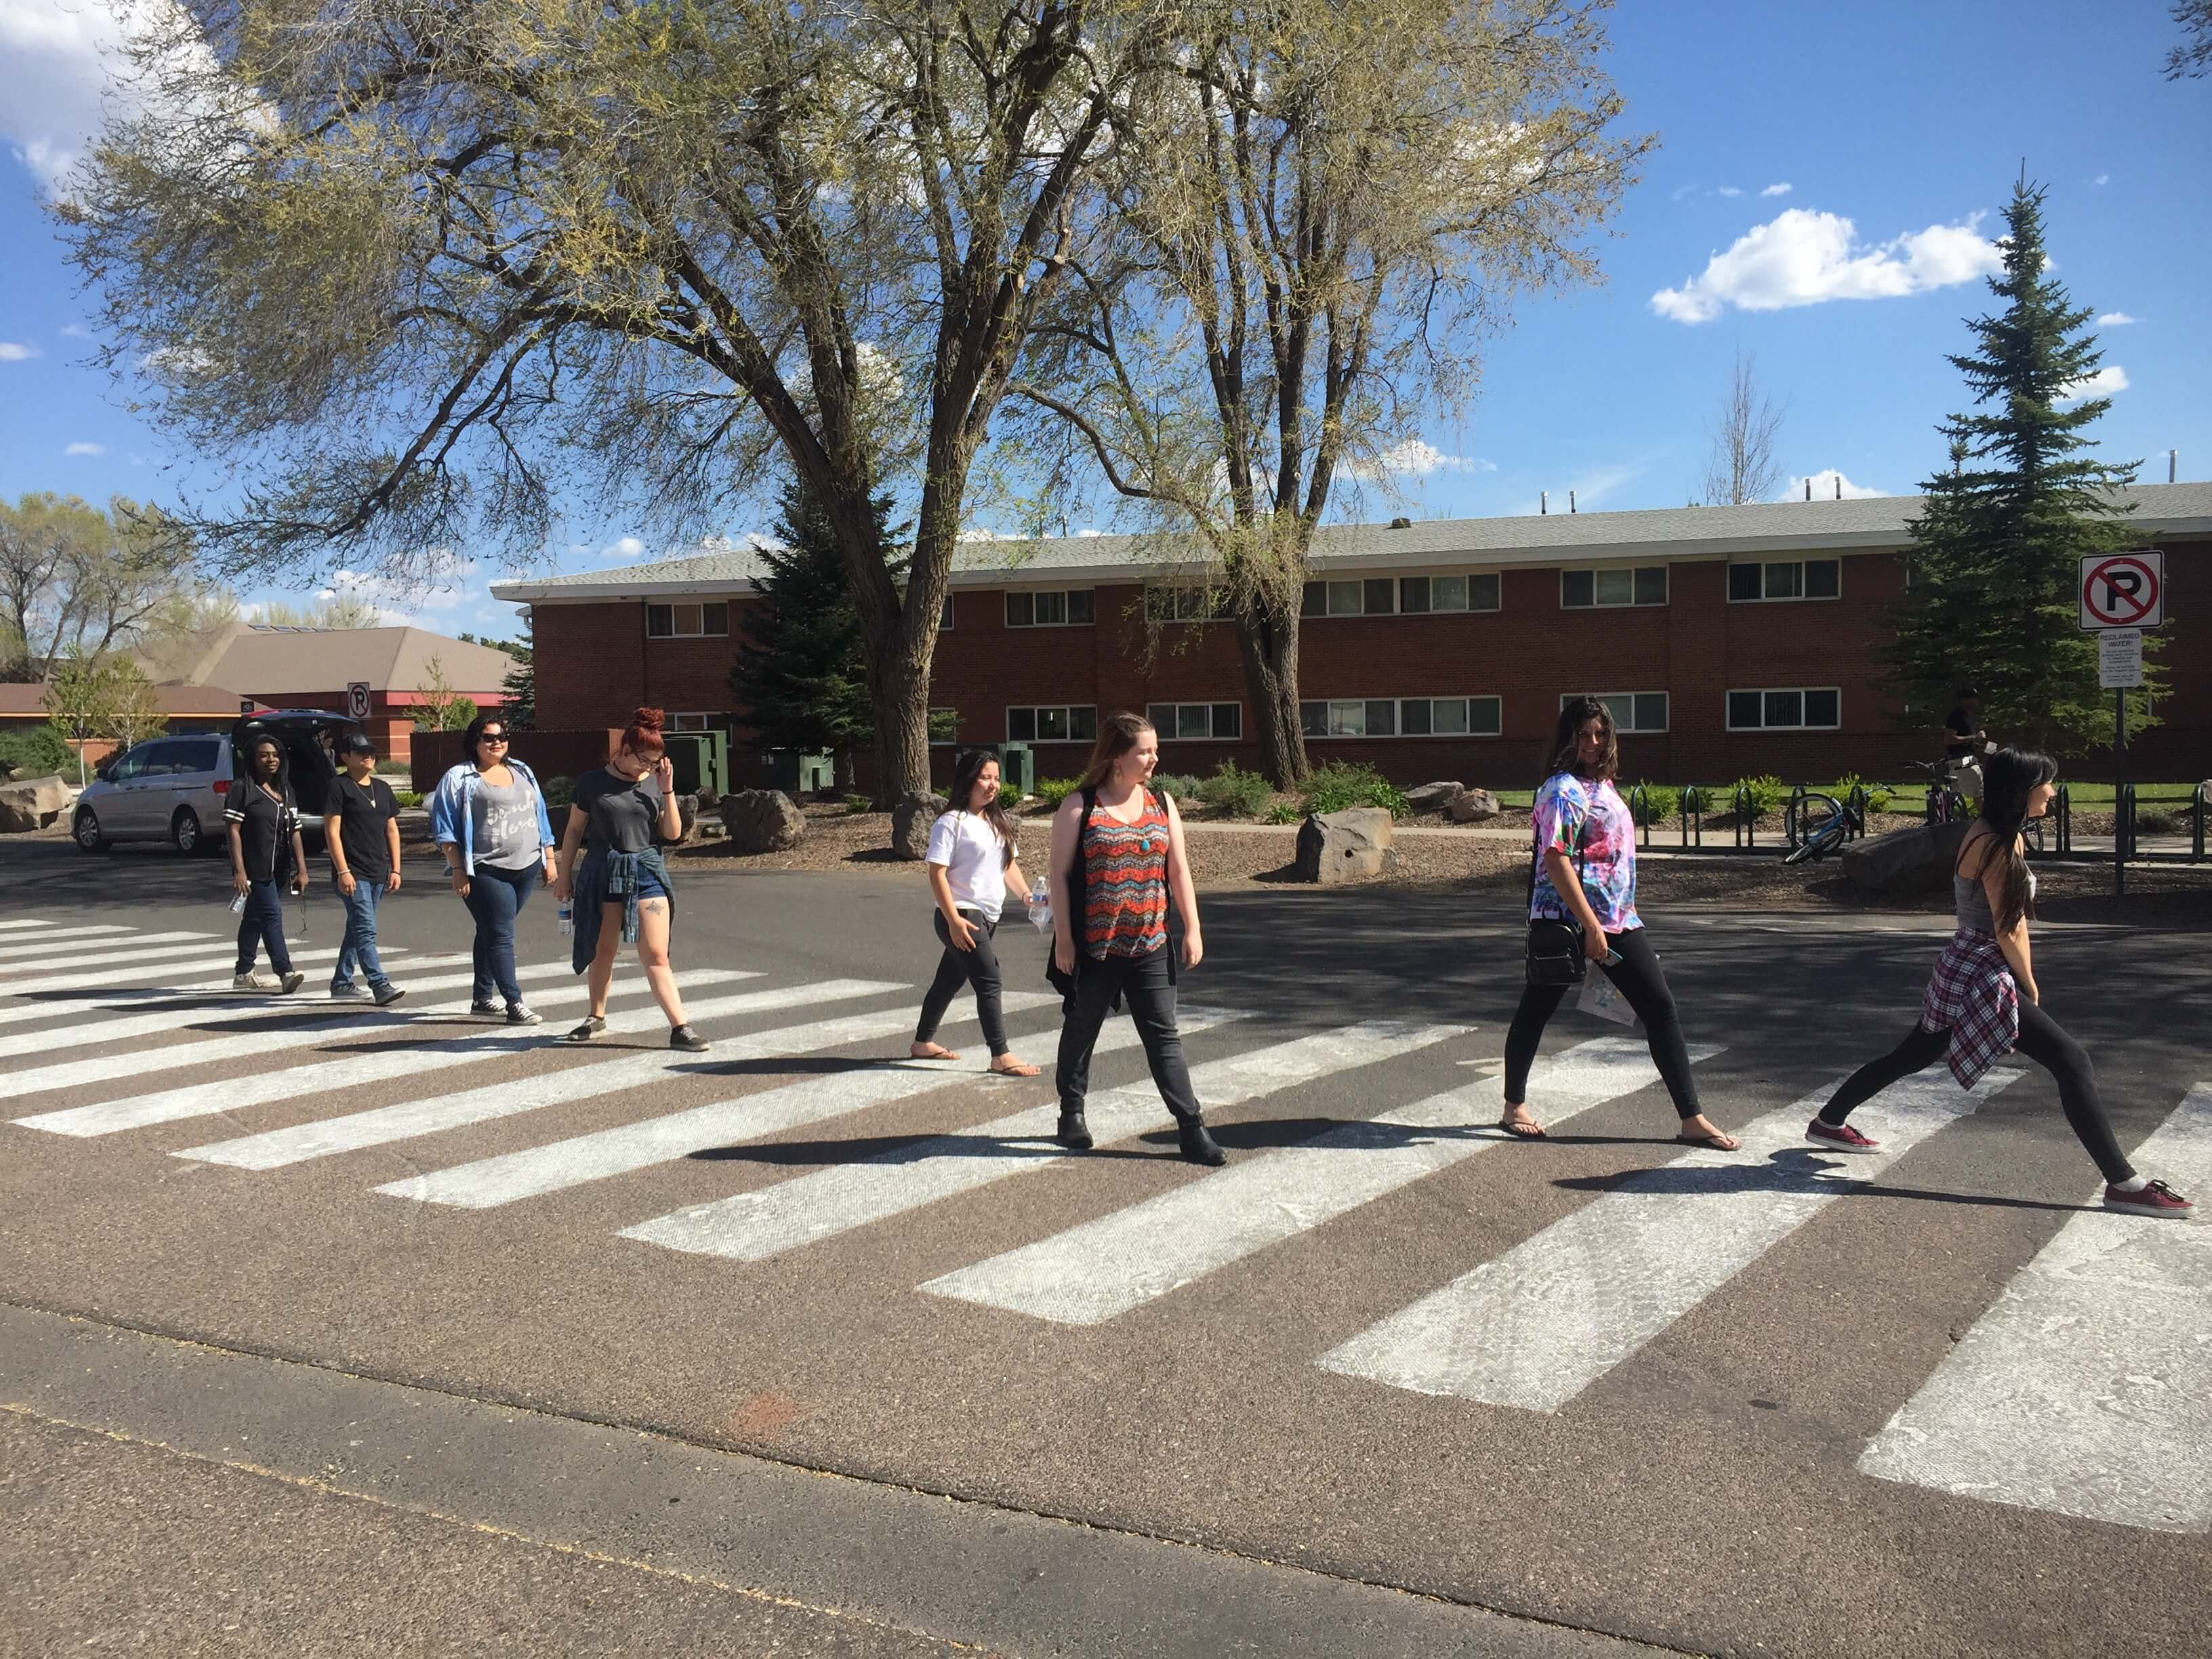 Students walking on crosswalk